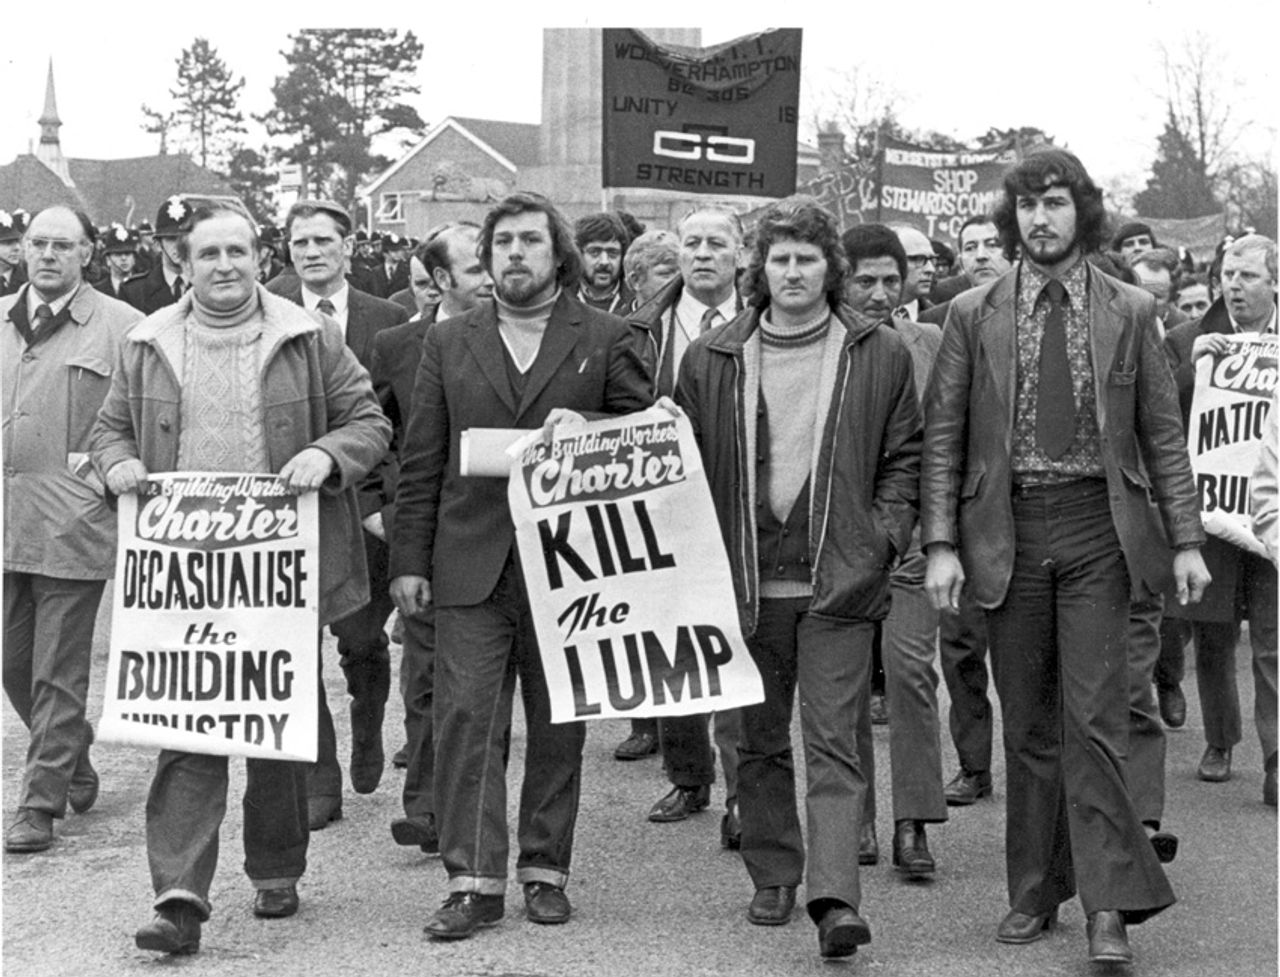 UK: Shrewsbury pickets convictions quashed after nearly 50 years